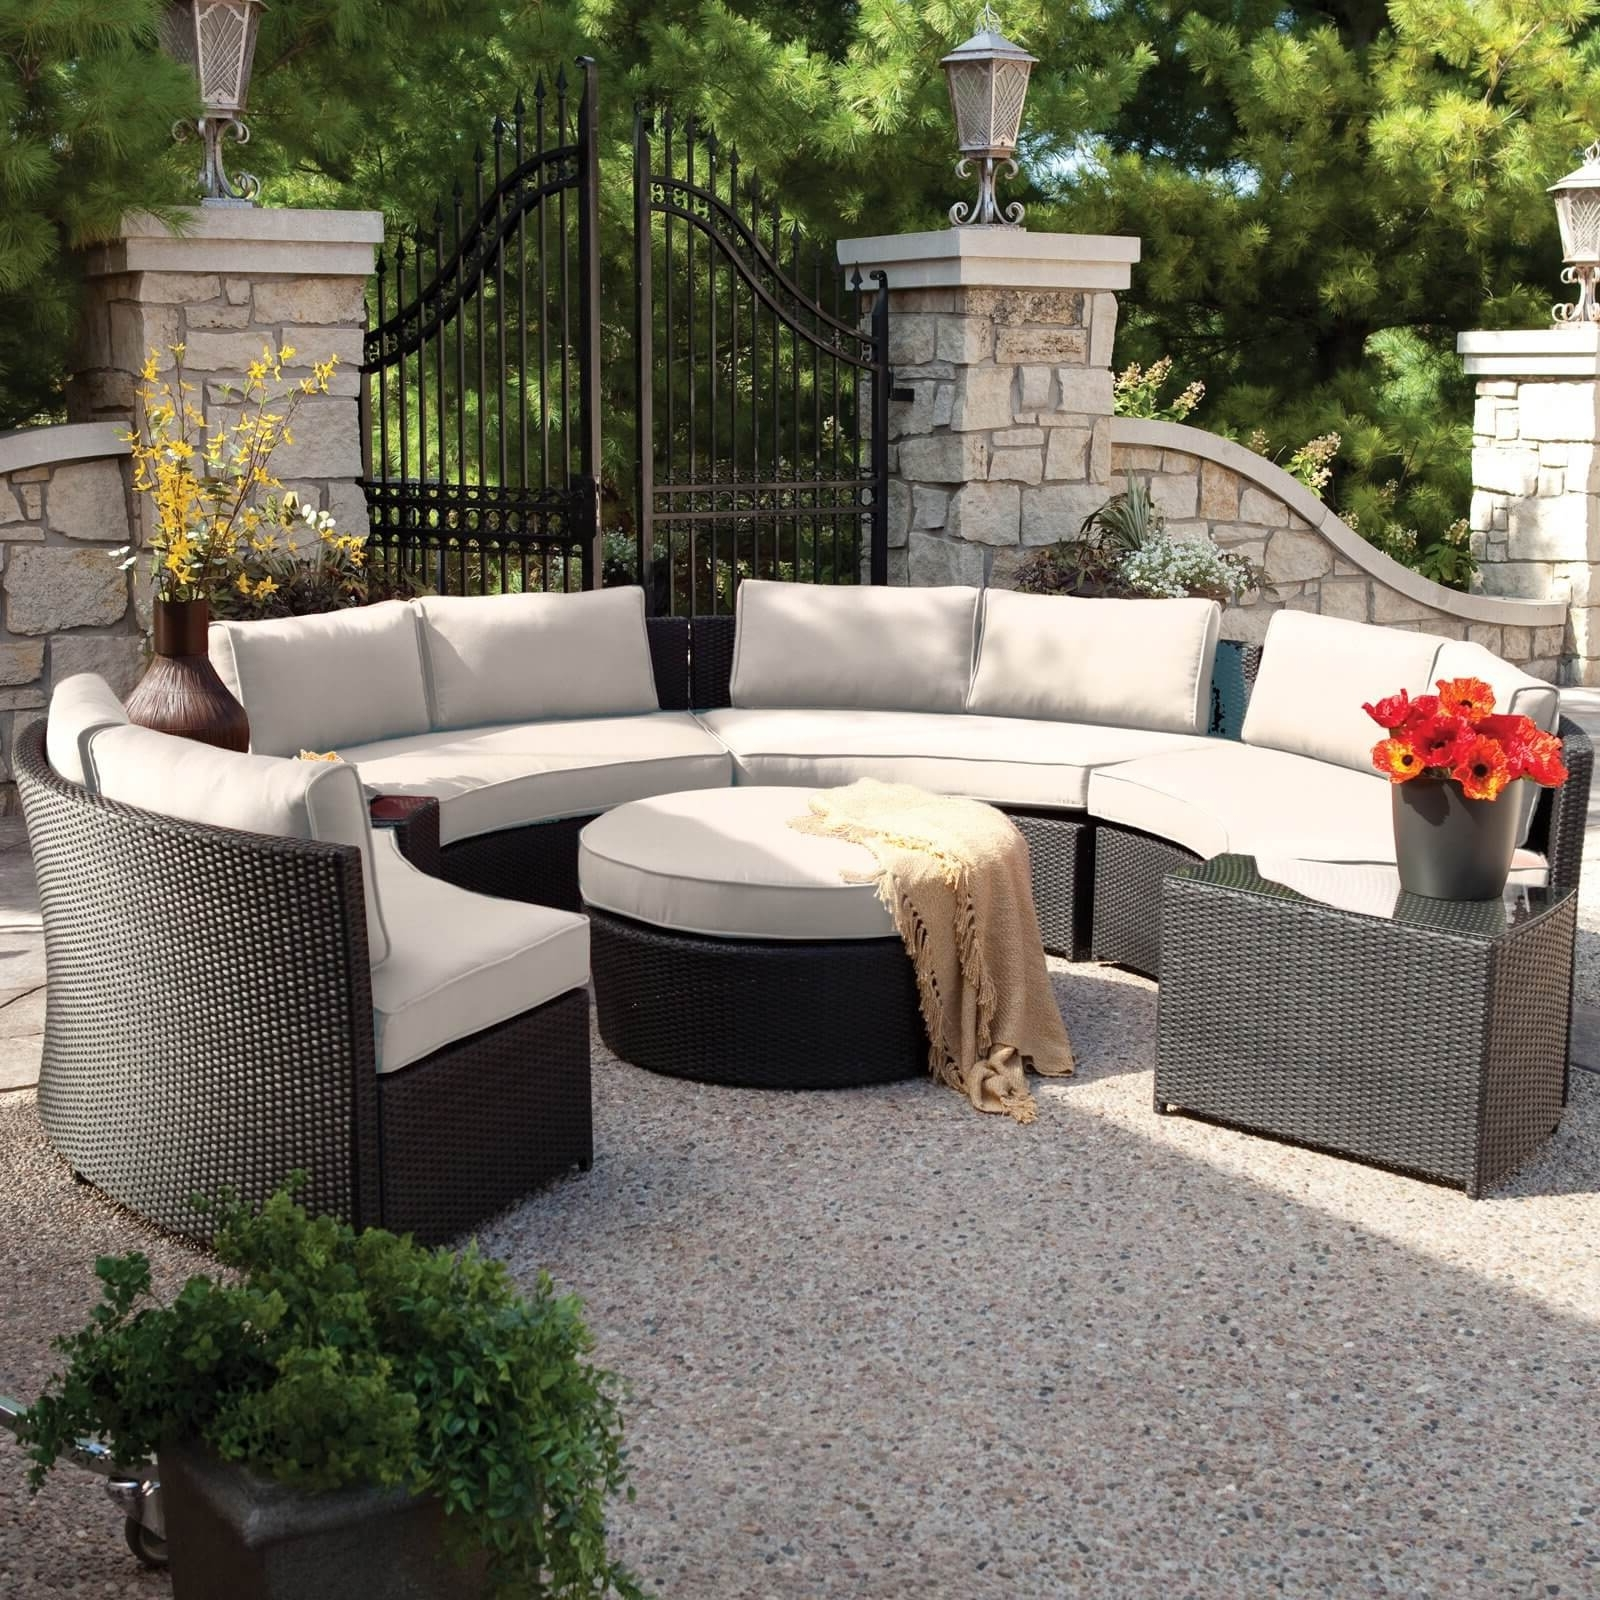 Most Recent 25 Awesome Modern Brown All Weather Outdoor Patio Sectionals Inside Resin Conversation Patio Sets (View 13 of 15)